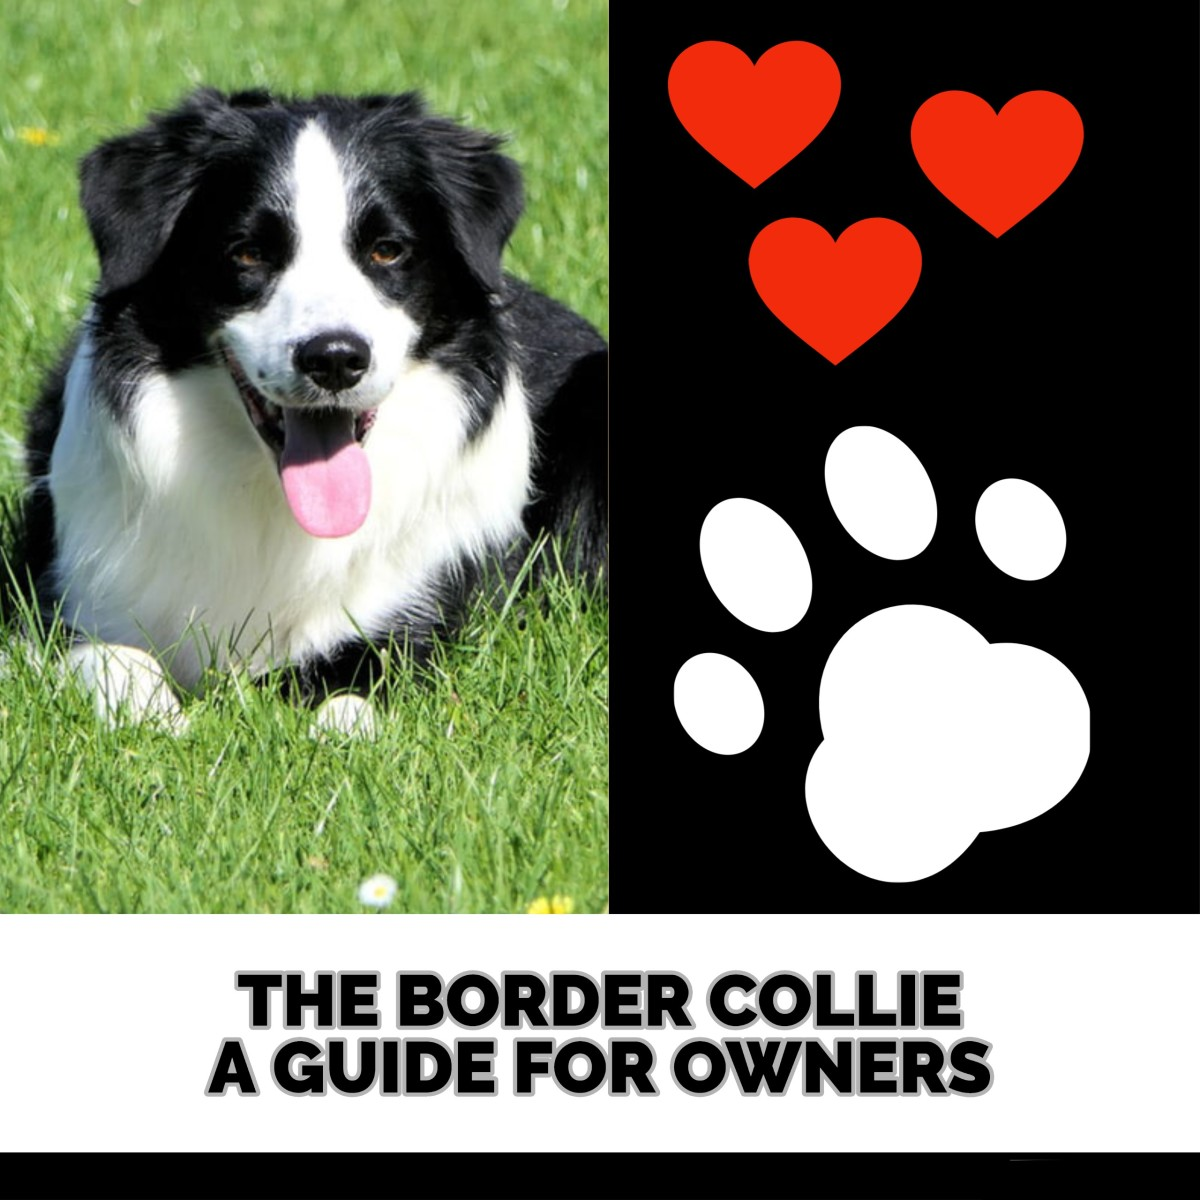 The Border Collie: A Guide for Owners.